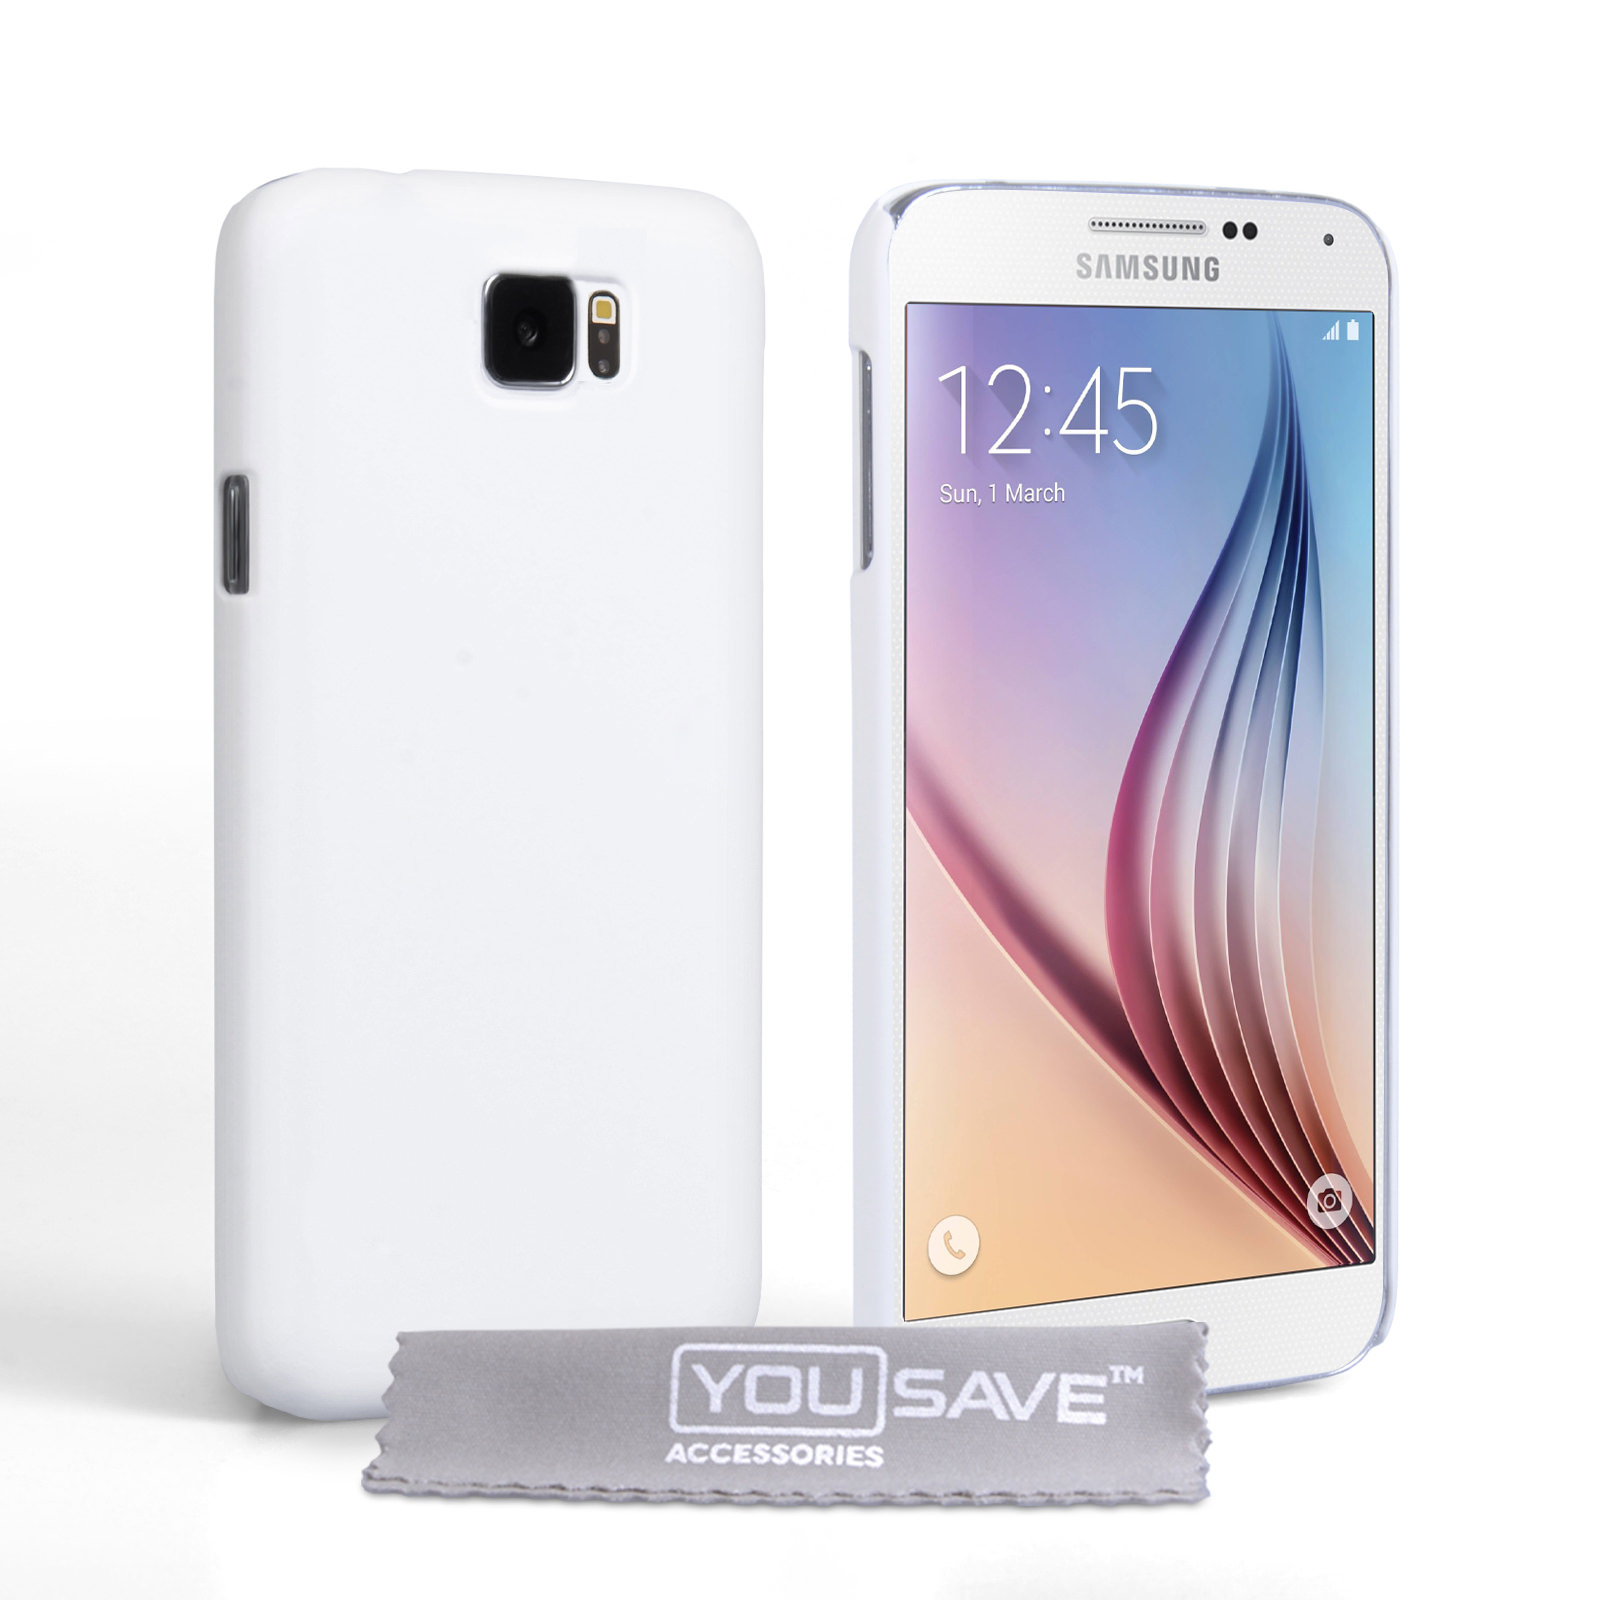 YouSave Accessories Samsung Galaxy S6 Hard Hybrid Case - White